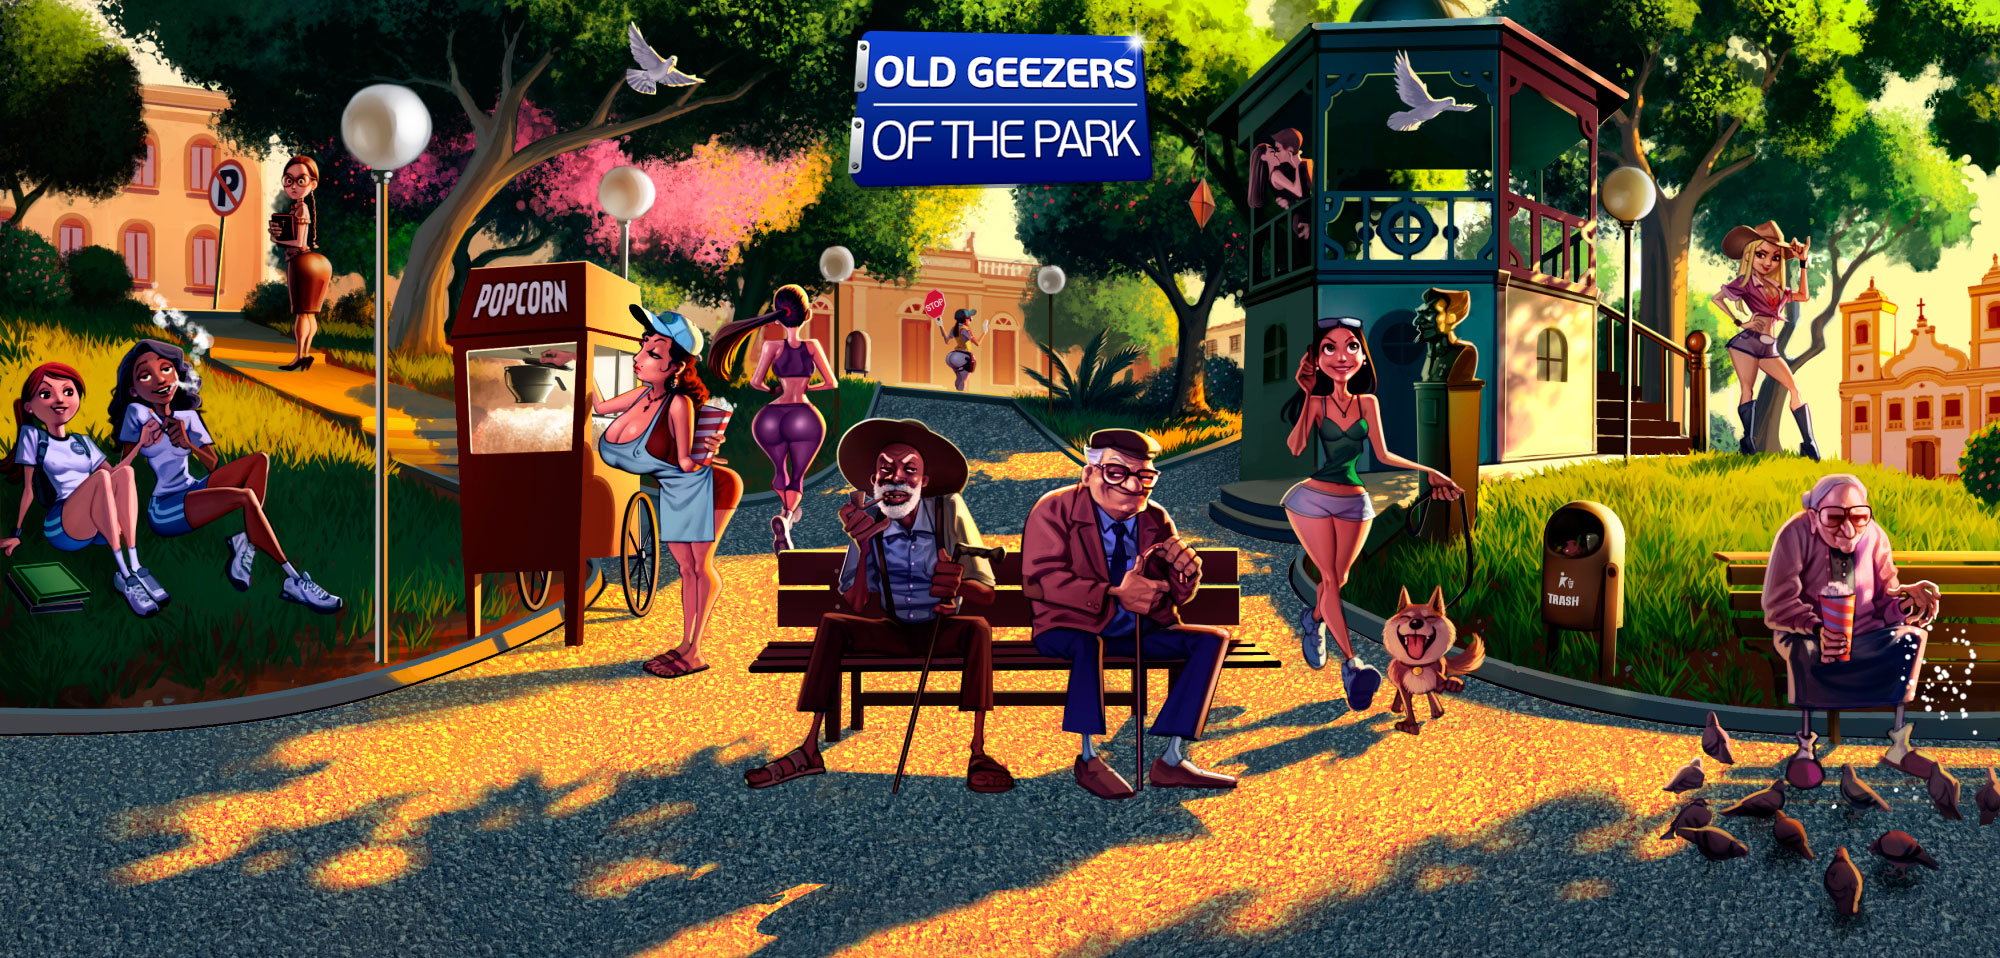 Old Geezers of the Park - header